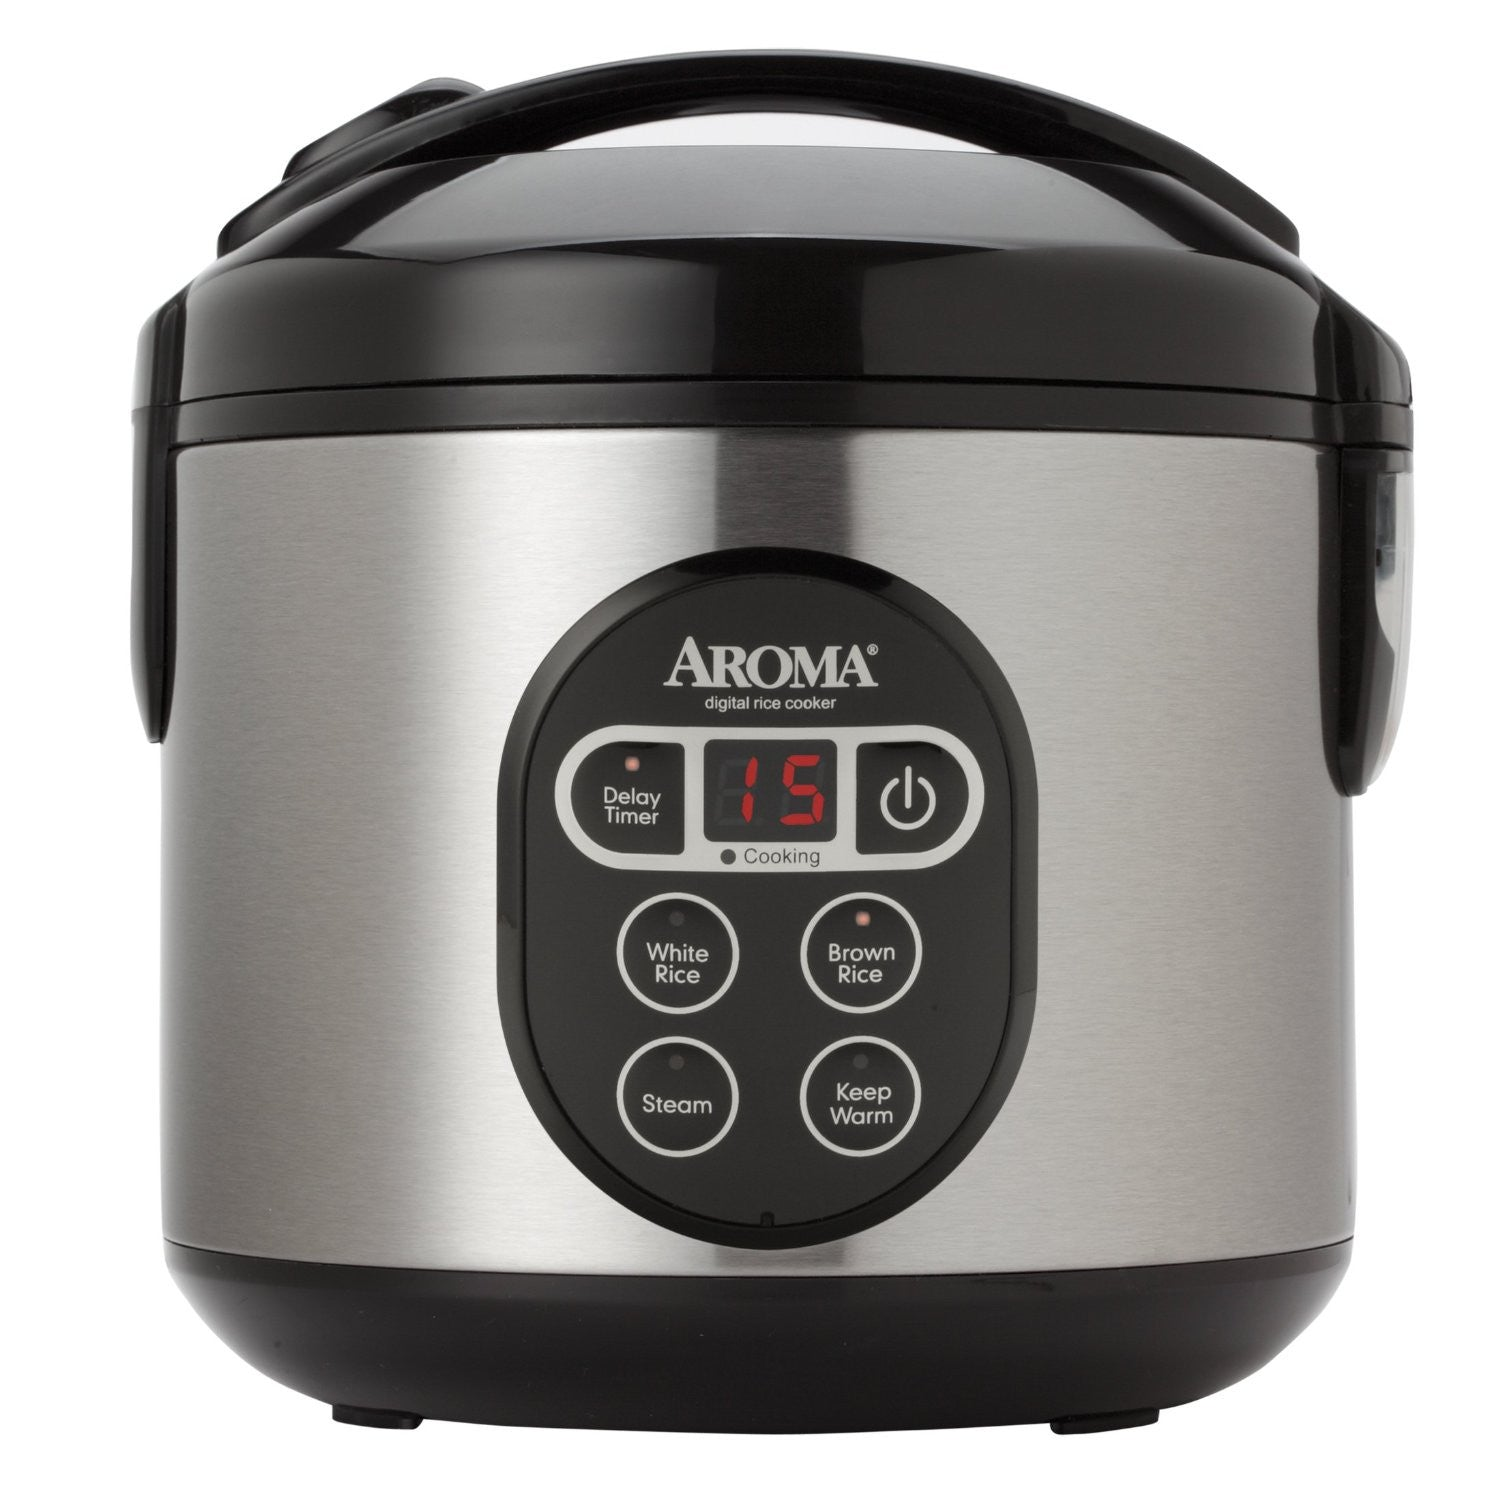 Aroma Housewares Digital Cool-Touch Rice Cooker and Food Steamer with Stainless Steel Exterior